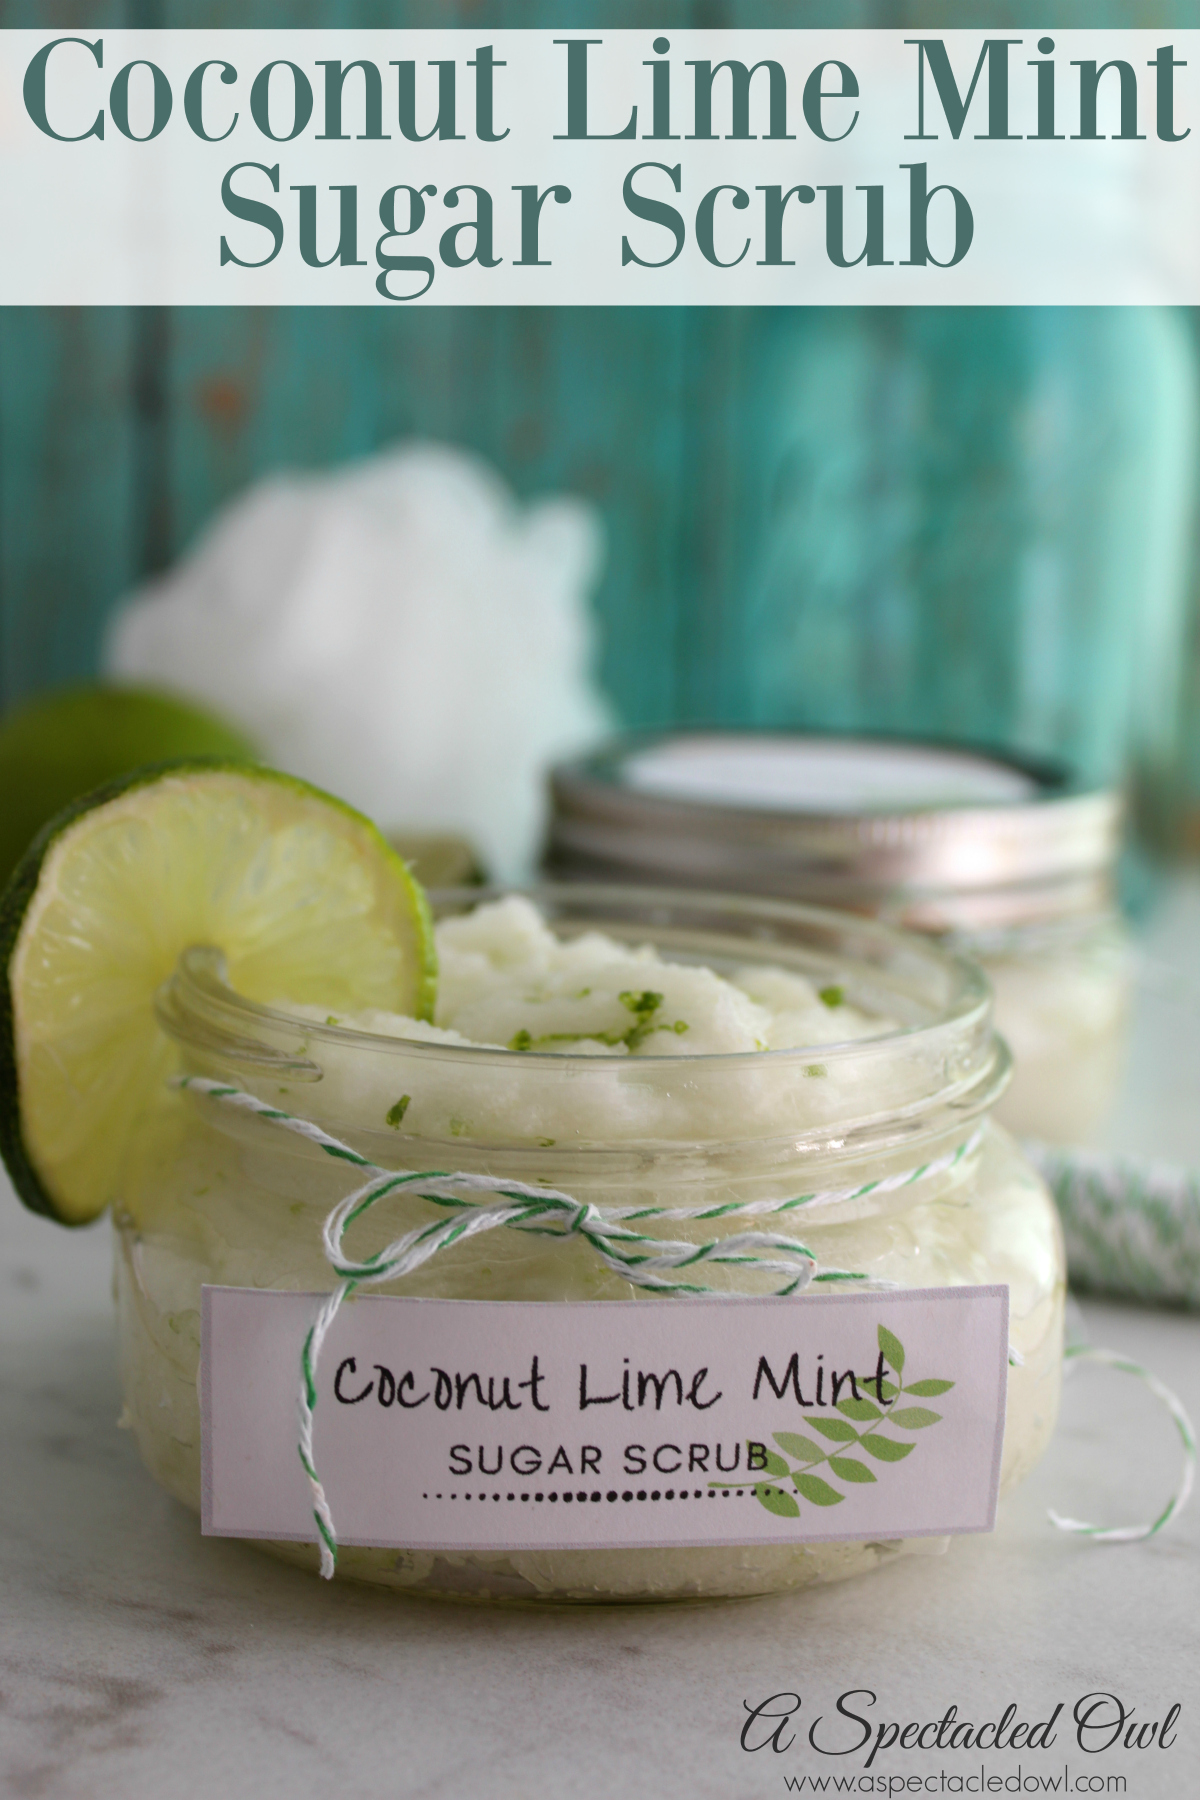 Coconut Mint Lime Sugar Scrub Recipe - I love how sugar scrubs make my skin feel so soft! I also love that you can make so many different scents depending on your mood or the season.